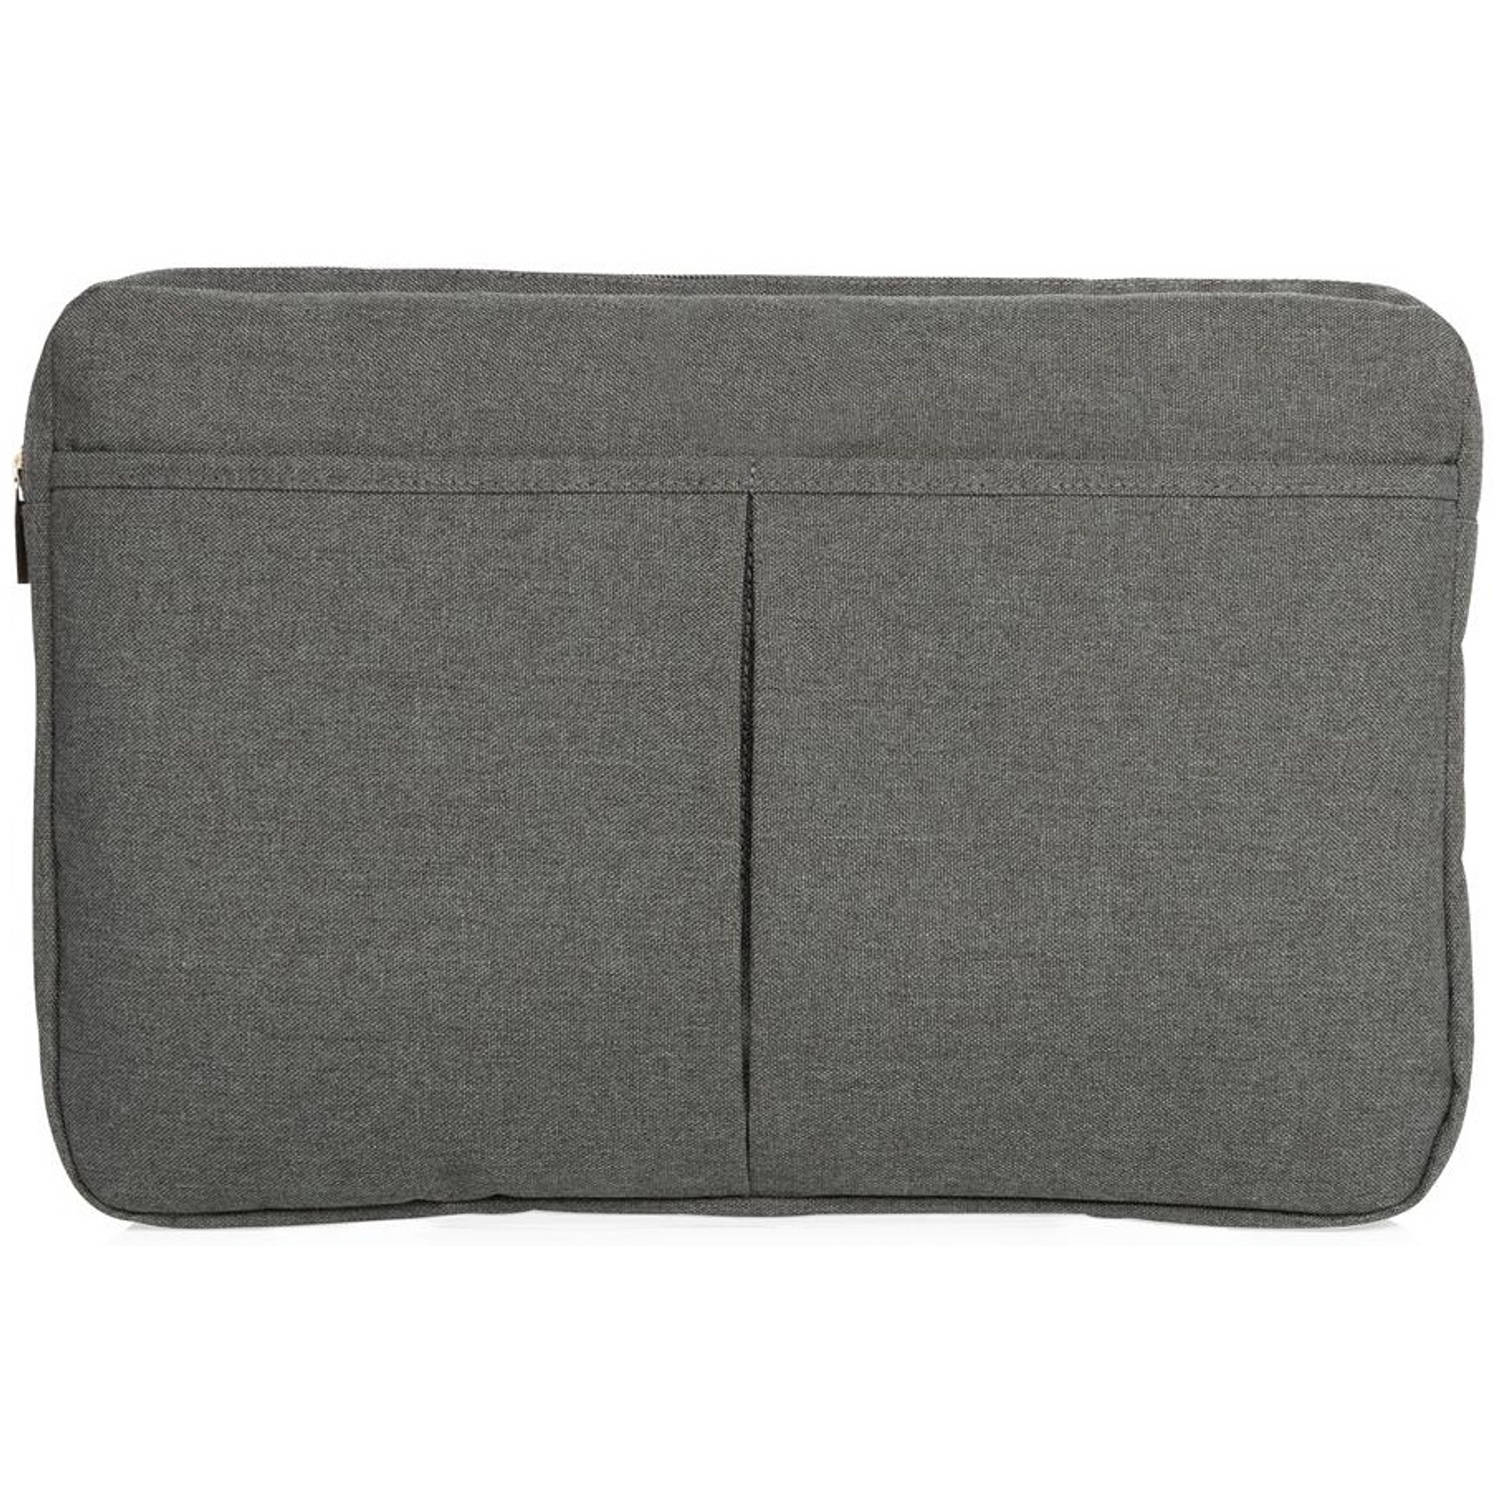 Korting Xd Collection Laptop Hoes 15 Inch Polyester Antraciet